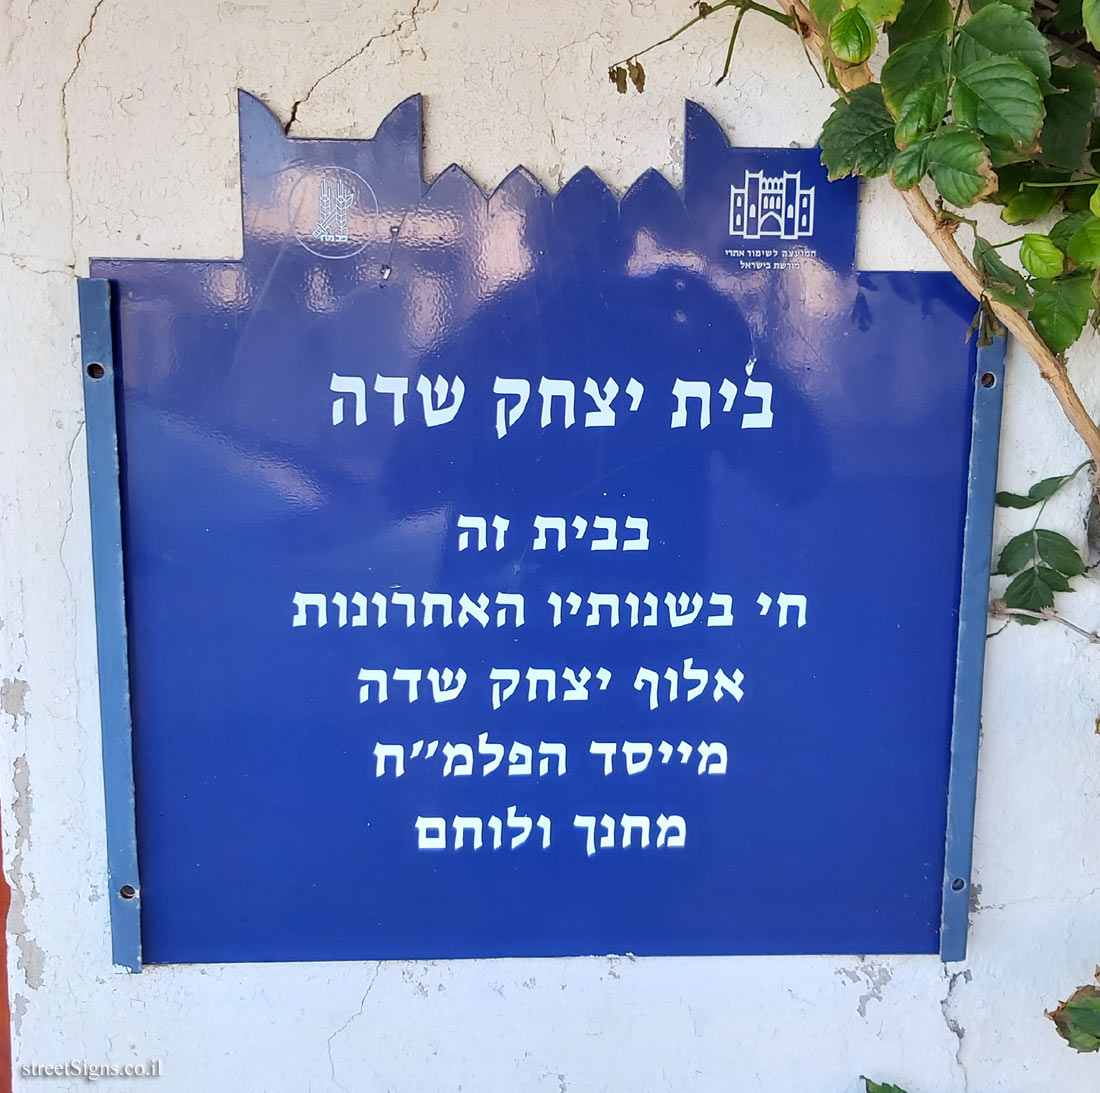 Tel Aviv - Heritage Sites in Israel - Yitzhak Sadeh's House